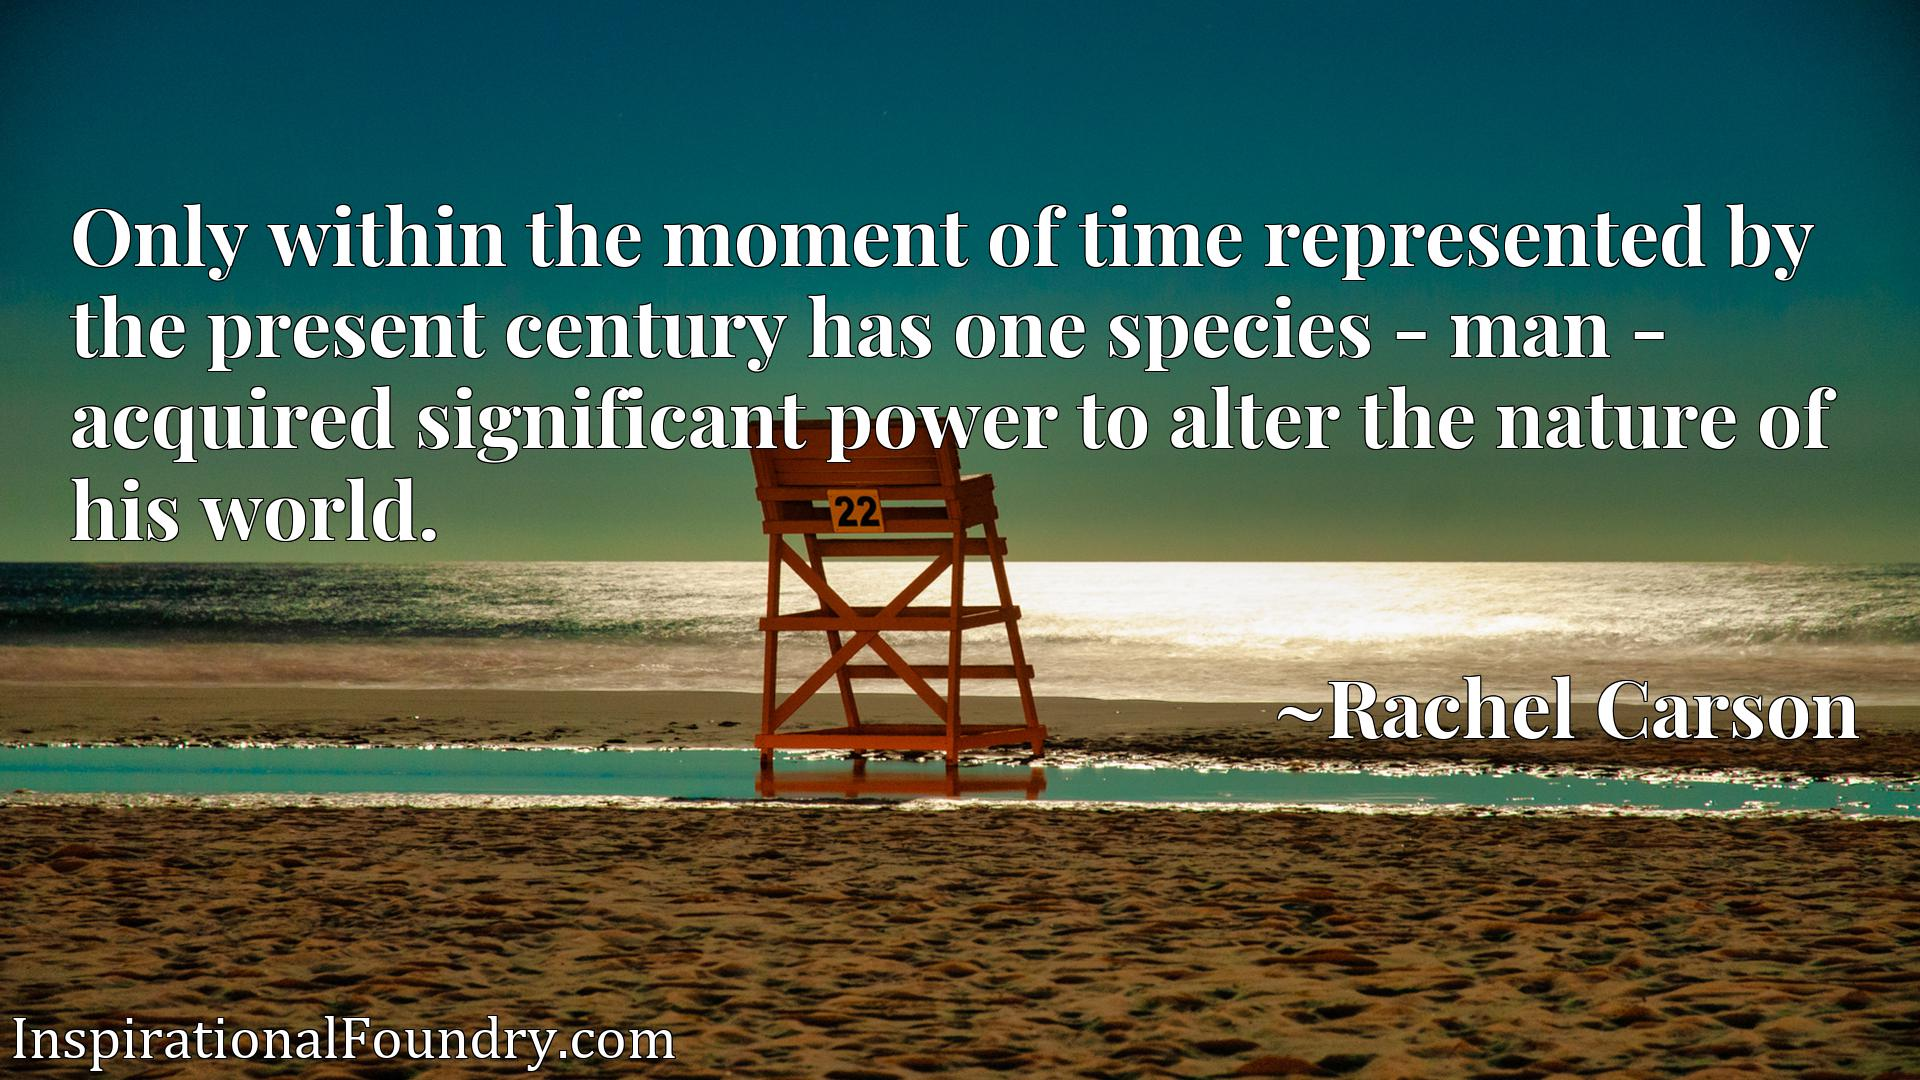 Only within the moment of time represented by the present century has one species - man - acquired significant power to alter the nature of his world.